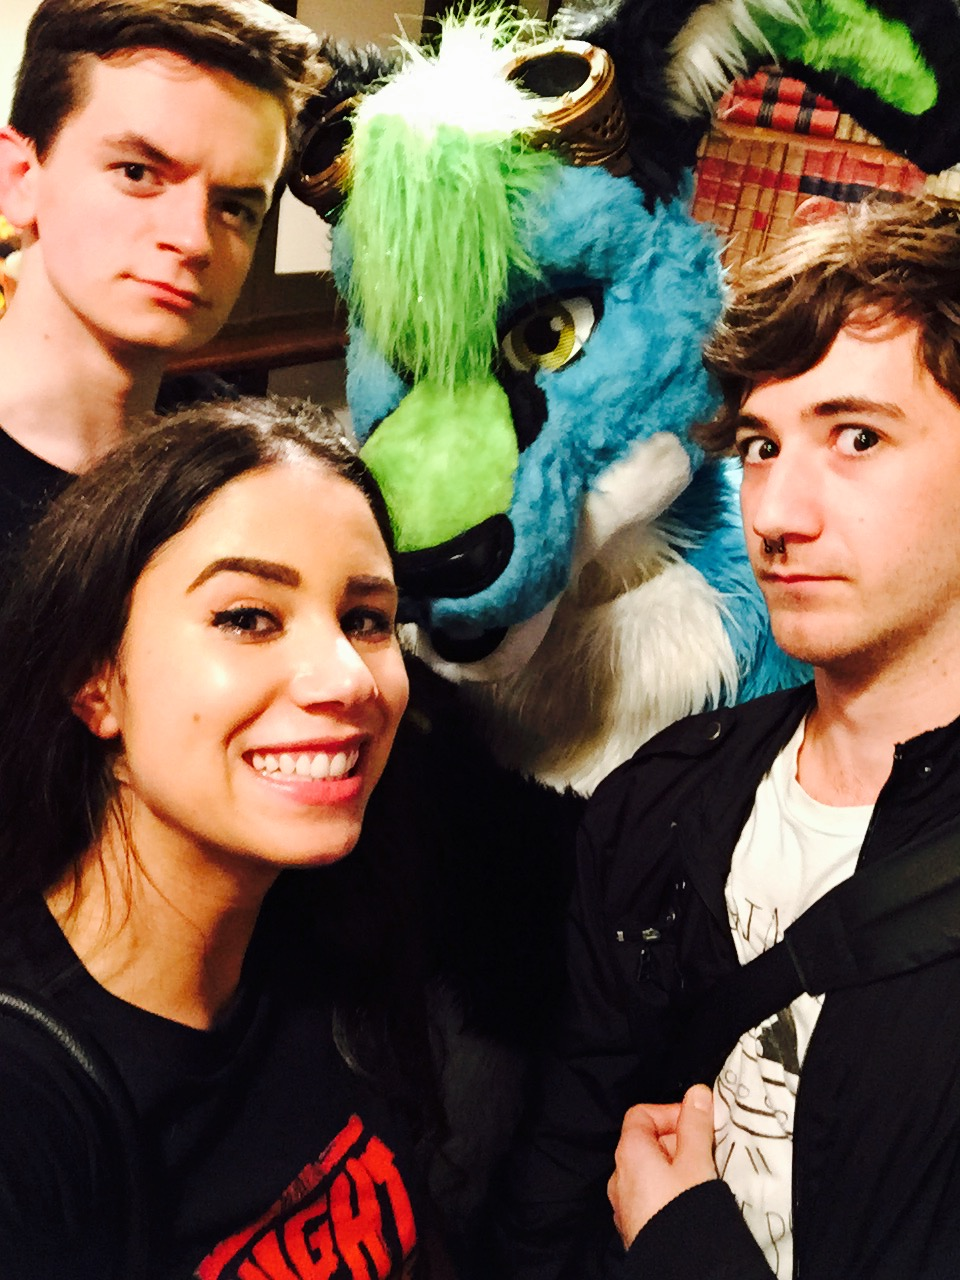 No party like a Rooster Teeth party with good friends, massive bunny-creatures,...